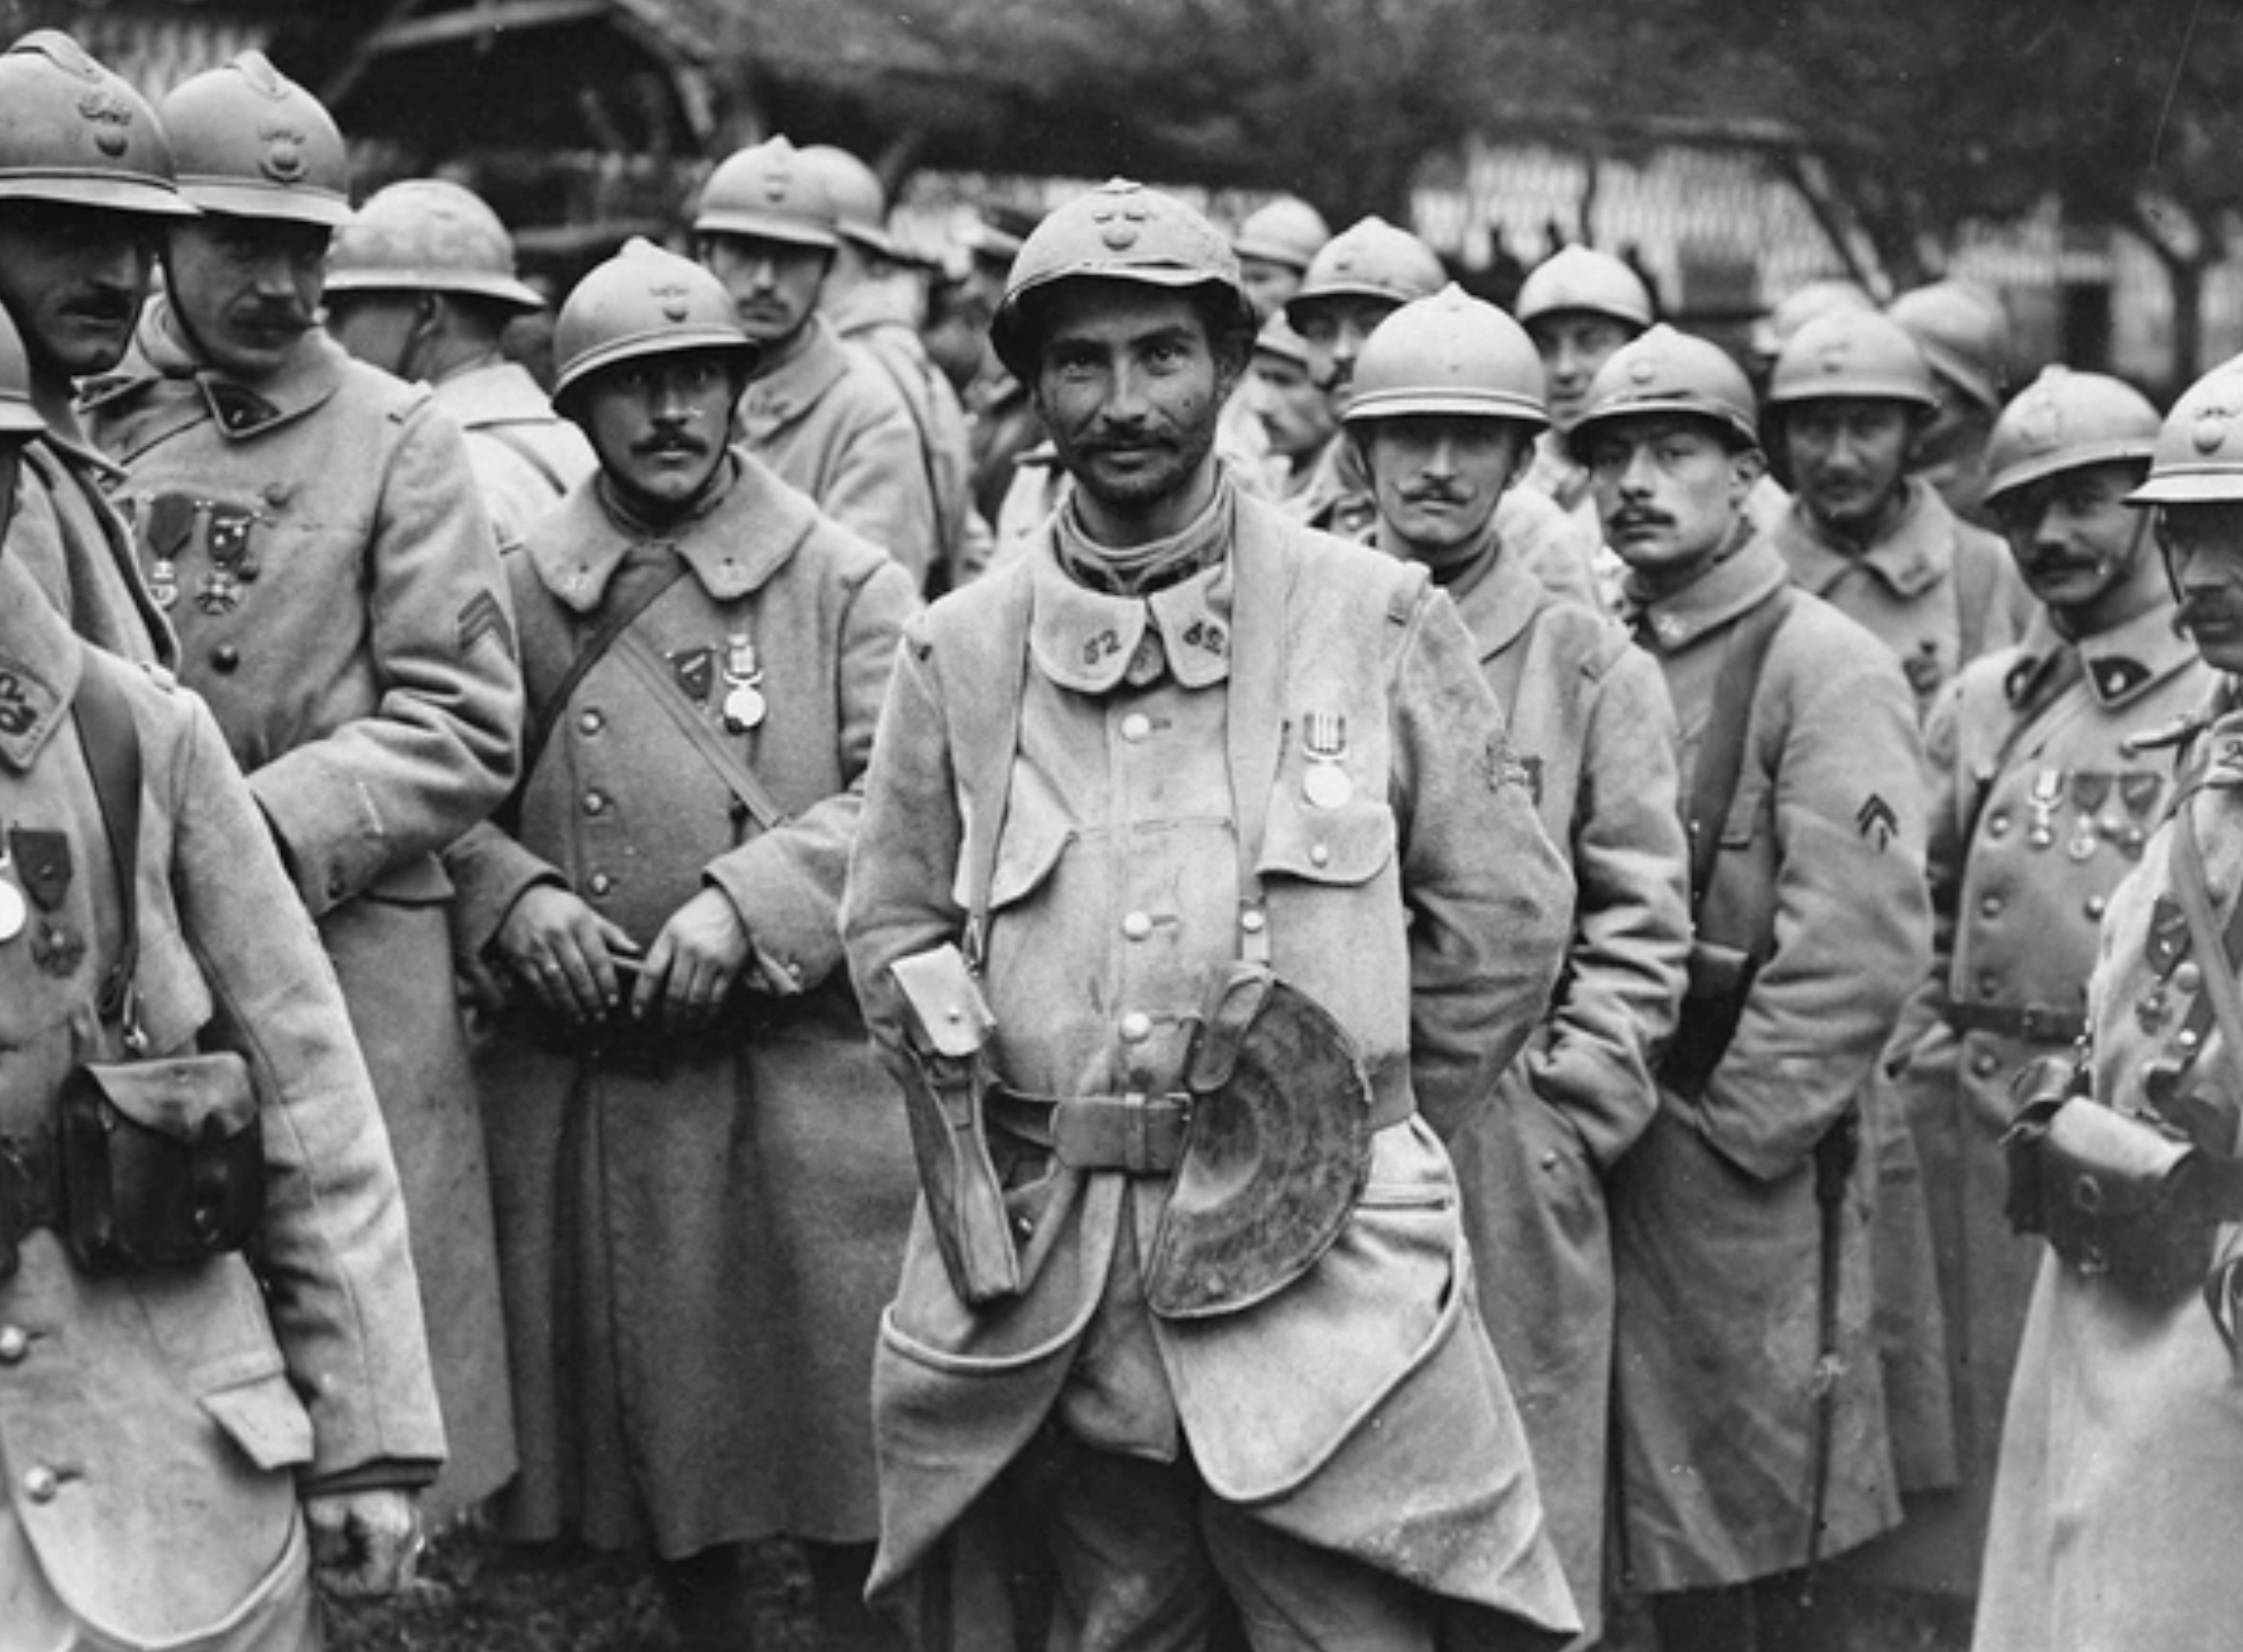 French soldiers in WWI.